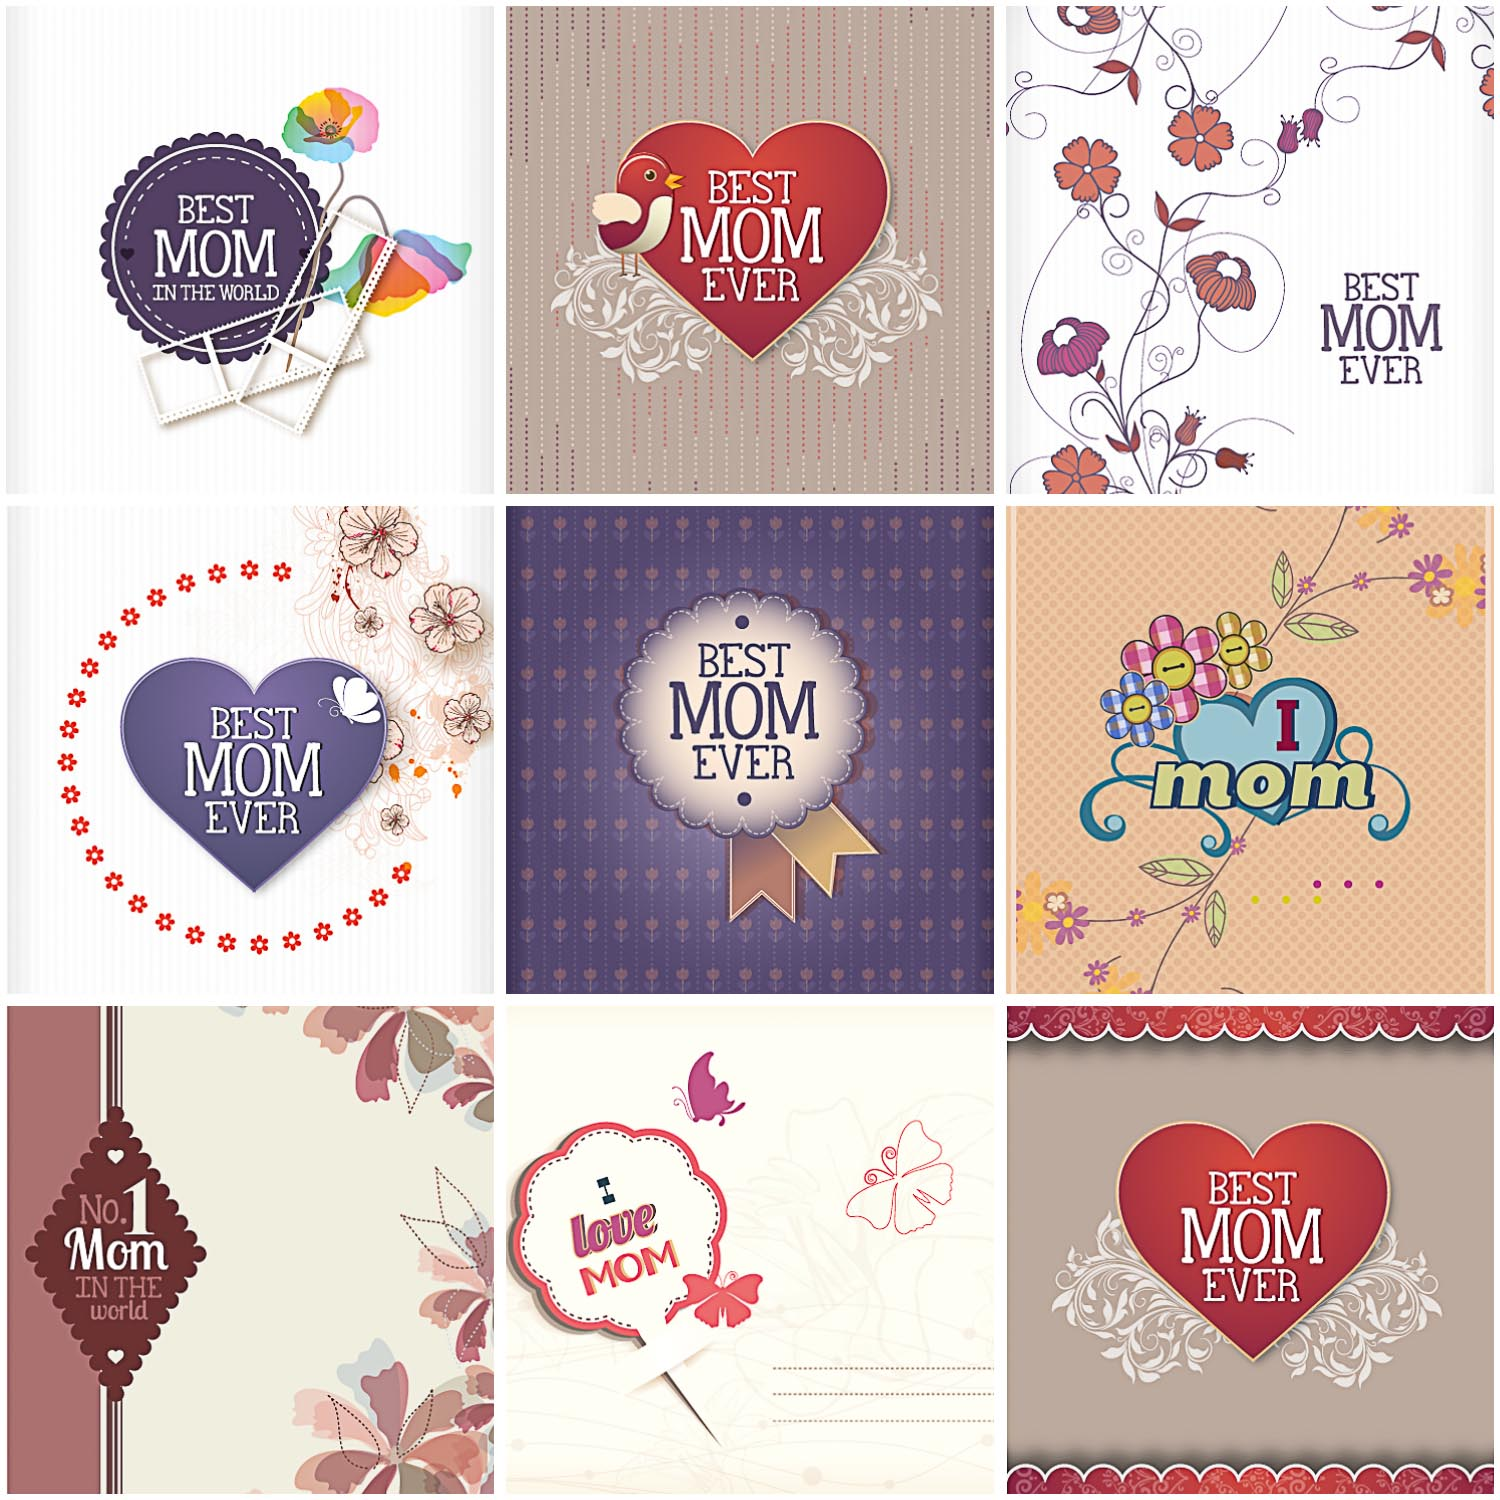 Best mom card vector